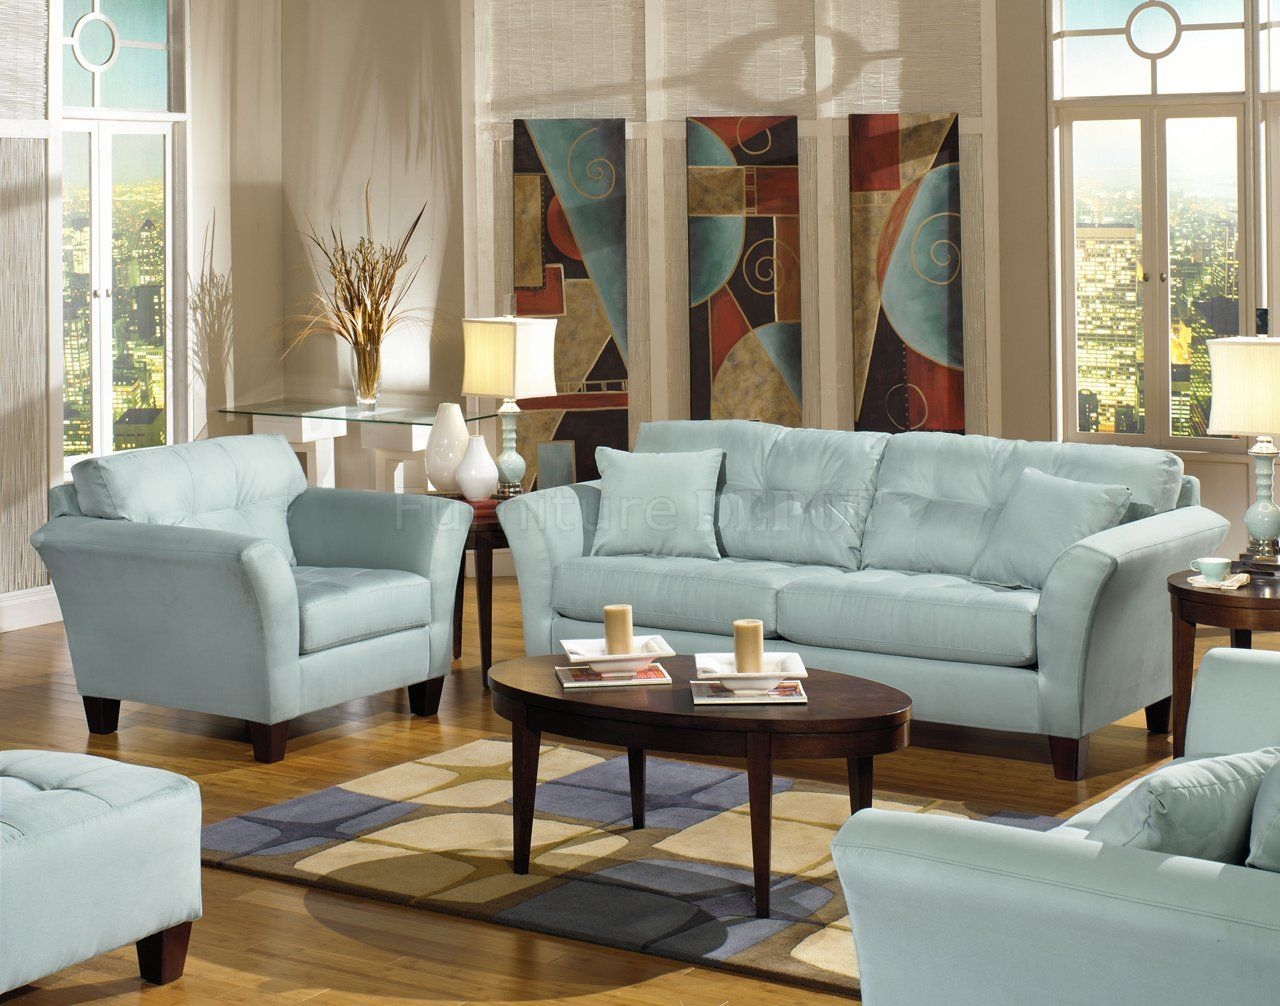 Best Light Blue Fabric Modern Sofa Loveseat Set W Wood Legs Light Blue Living Room Blue Living 400 x 300